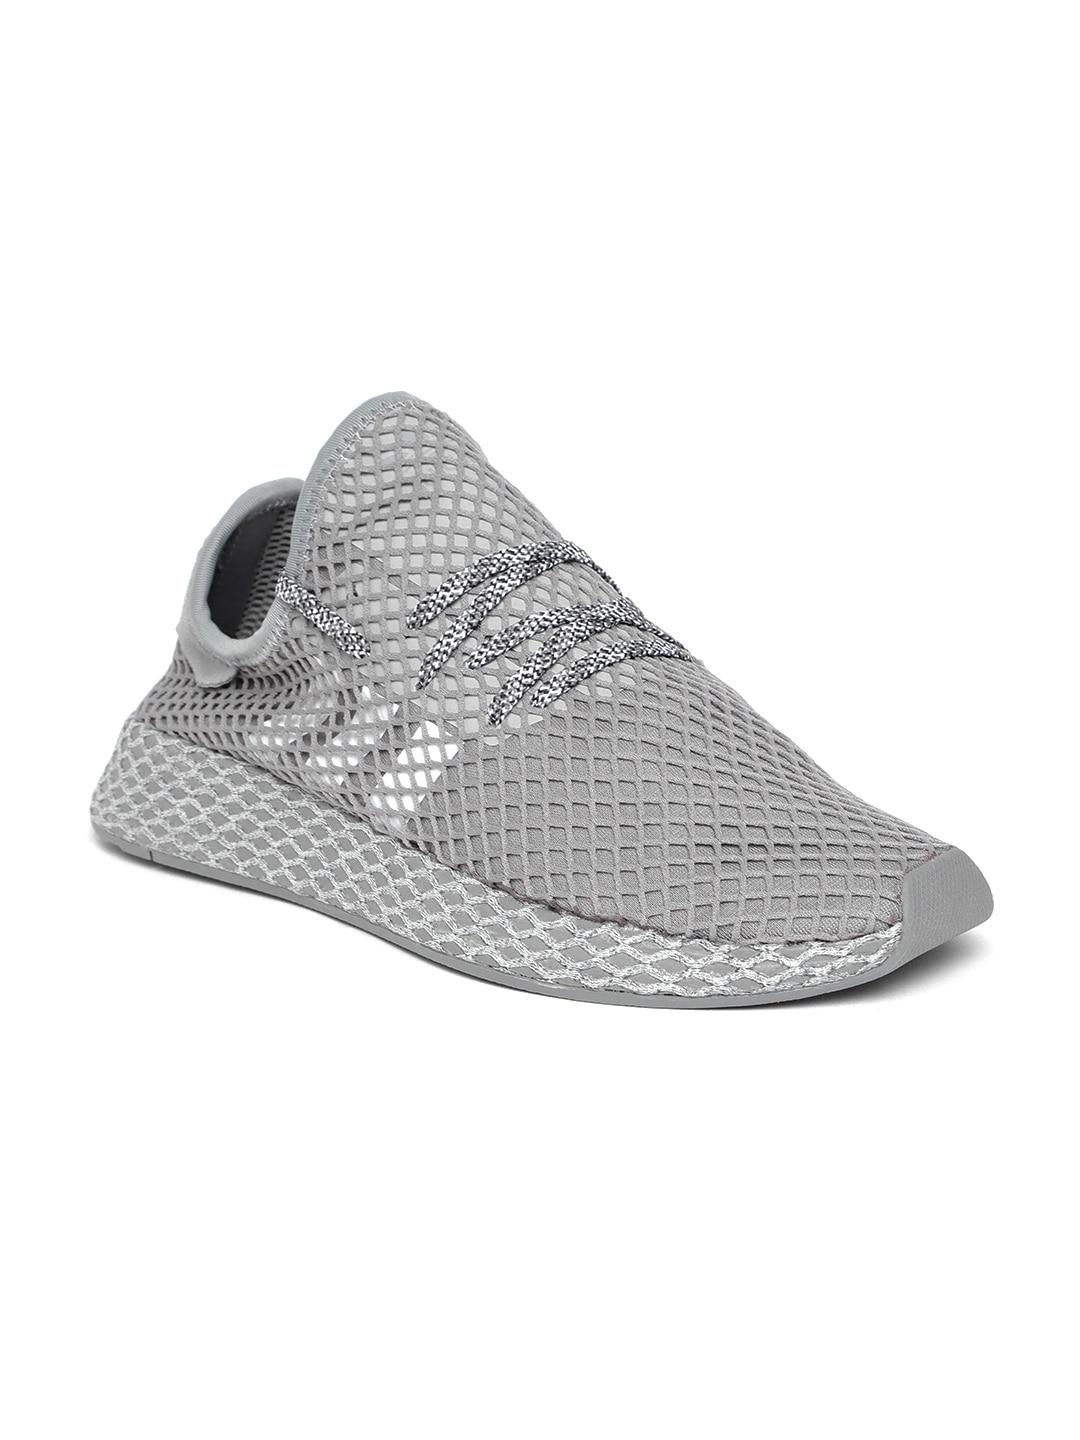 dc72347a07ea1 Sneakers Online - Buy Sneakers for Men   Women - Myntra